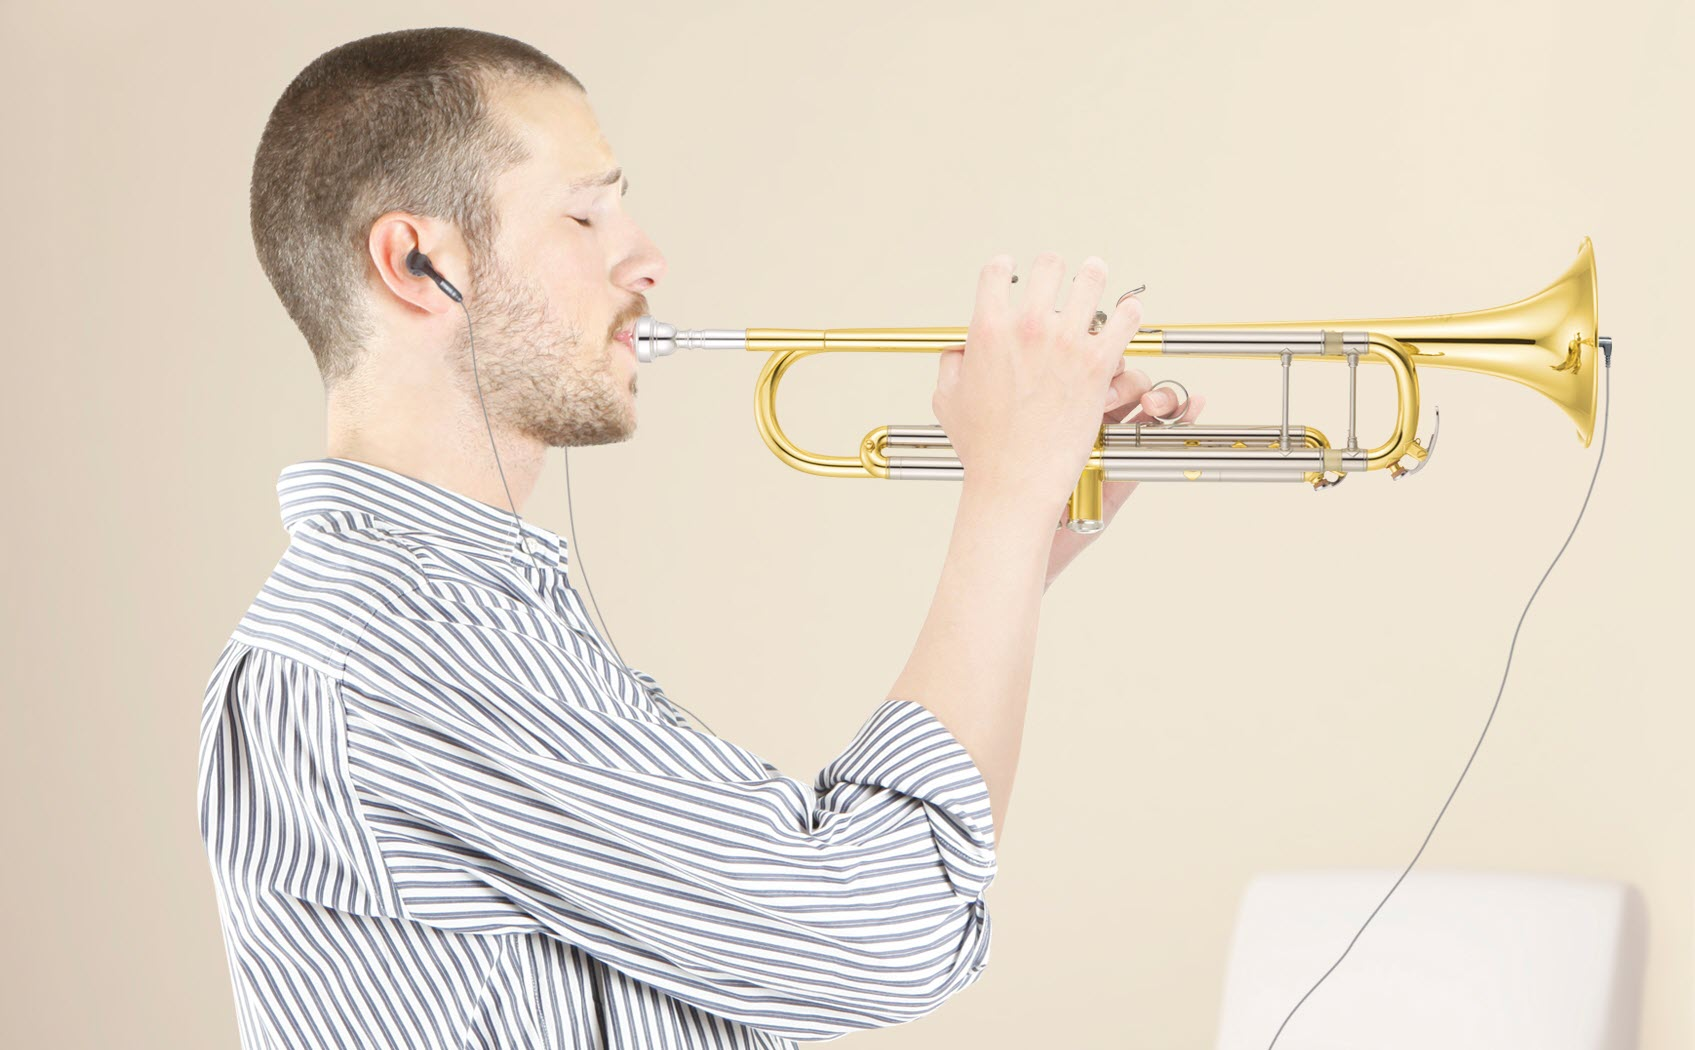 Young man playing a trumpet in a living room while wearing earbuds.